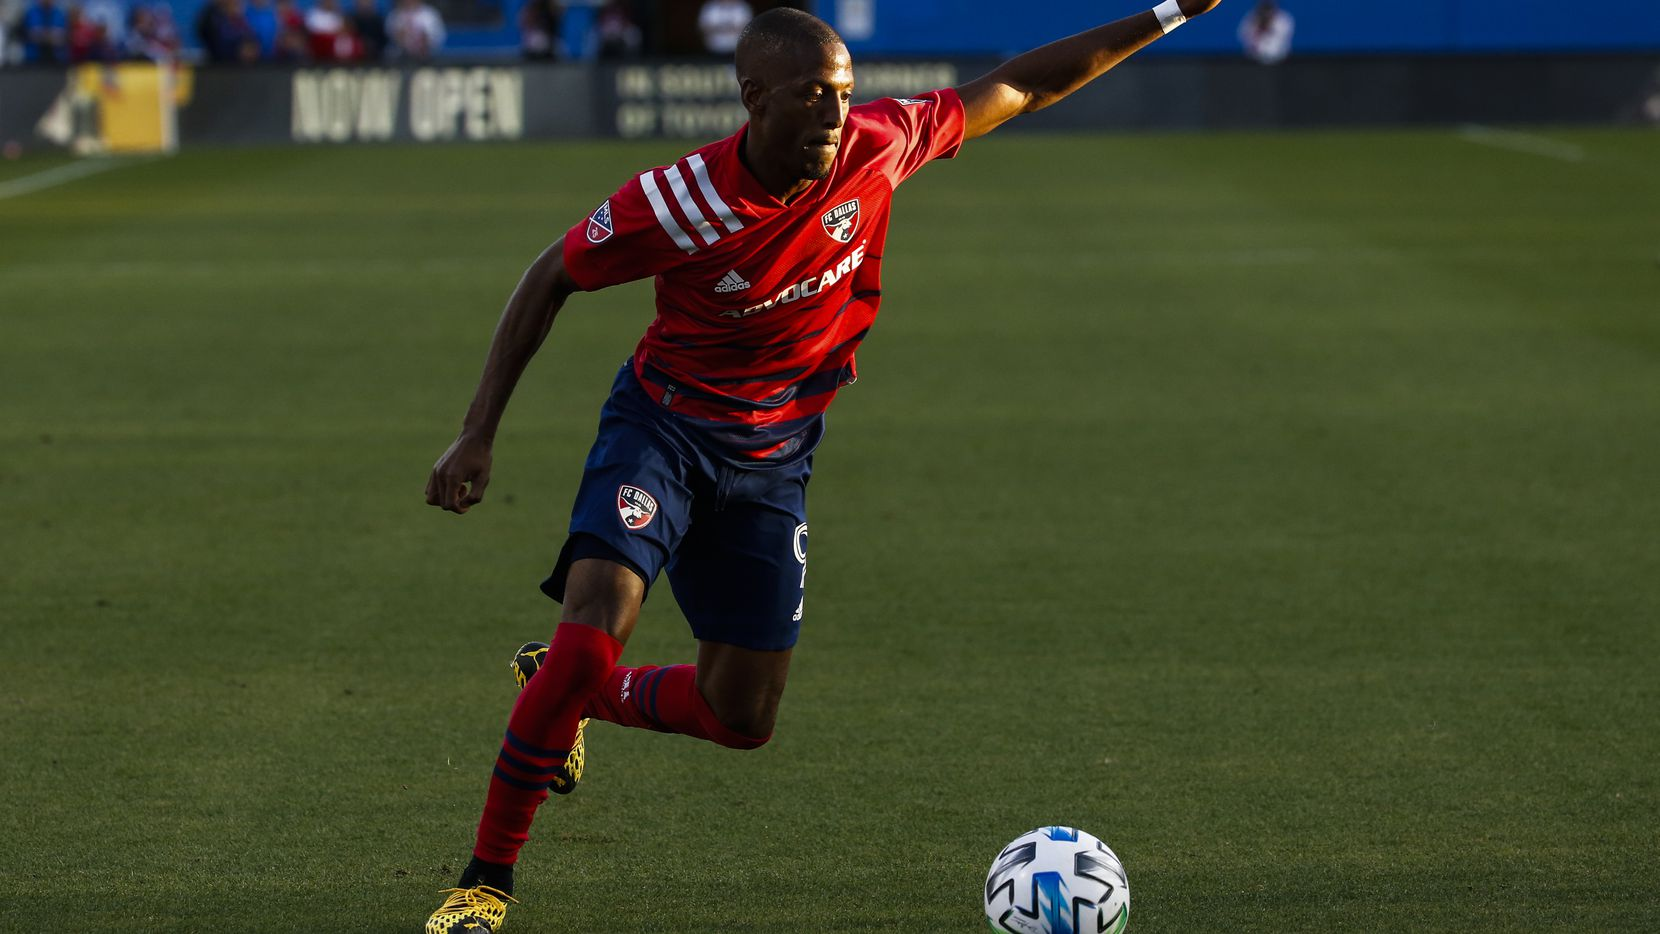 FC Dallas winger Fafa Picault (9) makes a pass during the first half of a match against the Philadelphia Union on Saturday, Feb. 29, 2020, at Toyota Stadium in Frisco.